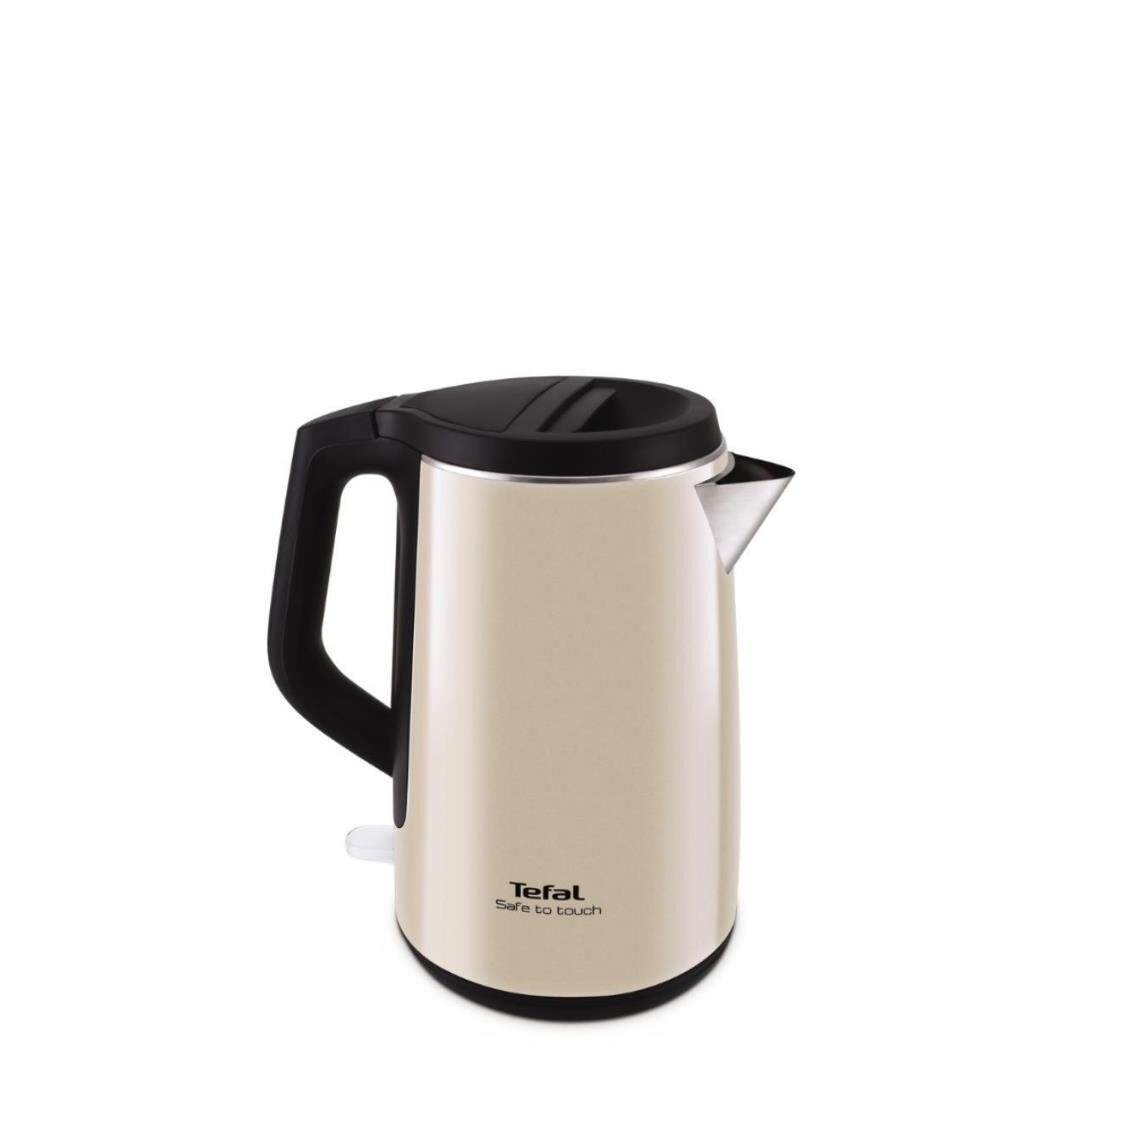 Tefal Kettle Safe To Touch Champagne 15L